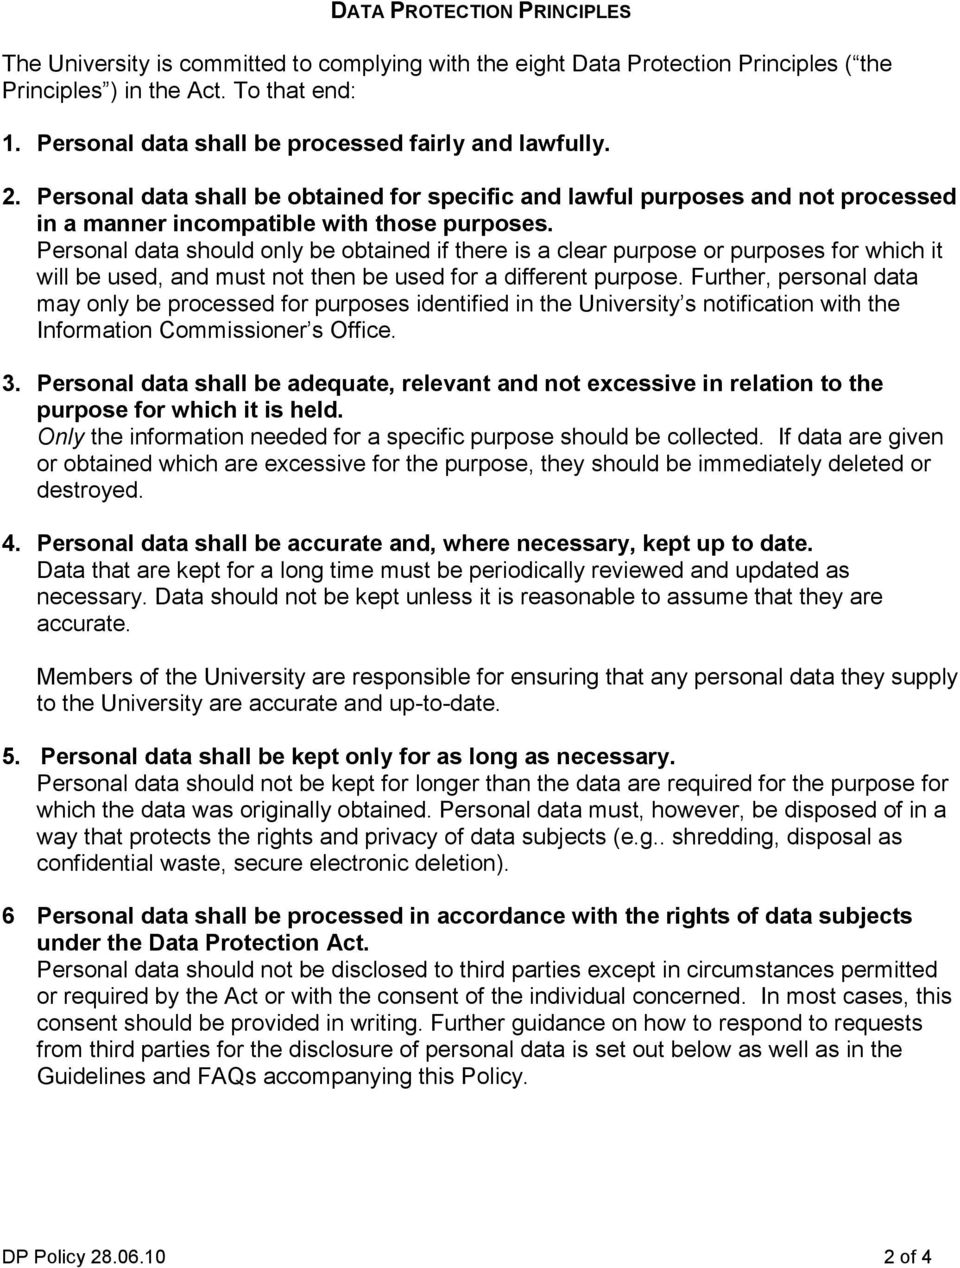 Personal data should only be obtained if there is a clear purpose or purposes for which it will be used, and must not then be used for a different purpose.